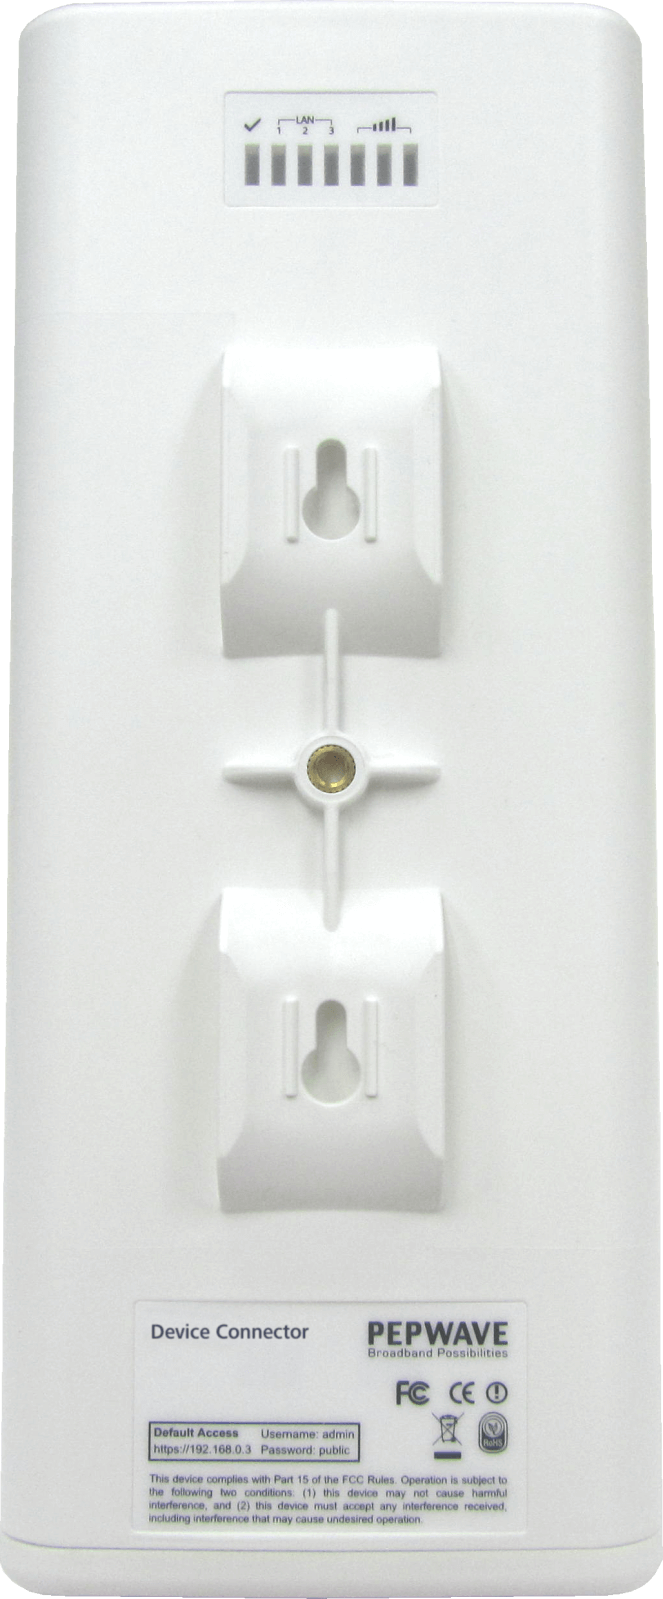 Pepwave Device Connector IP55 back